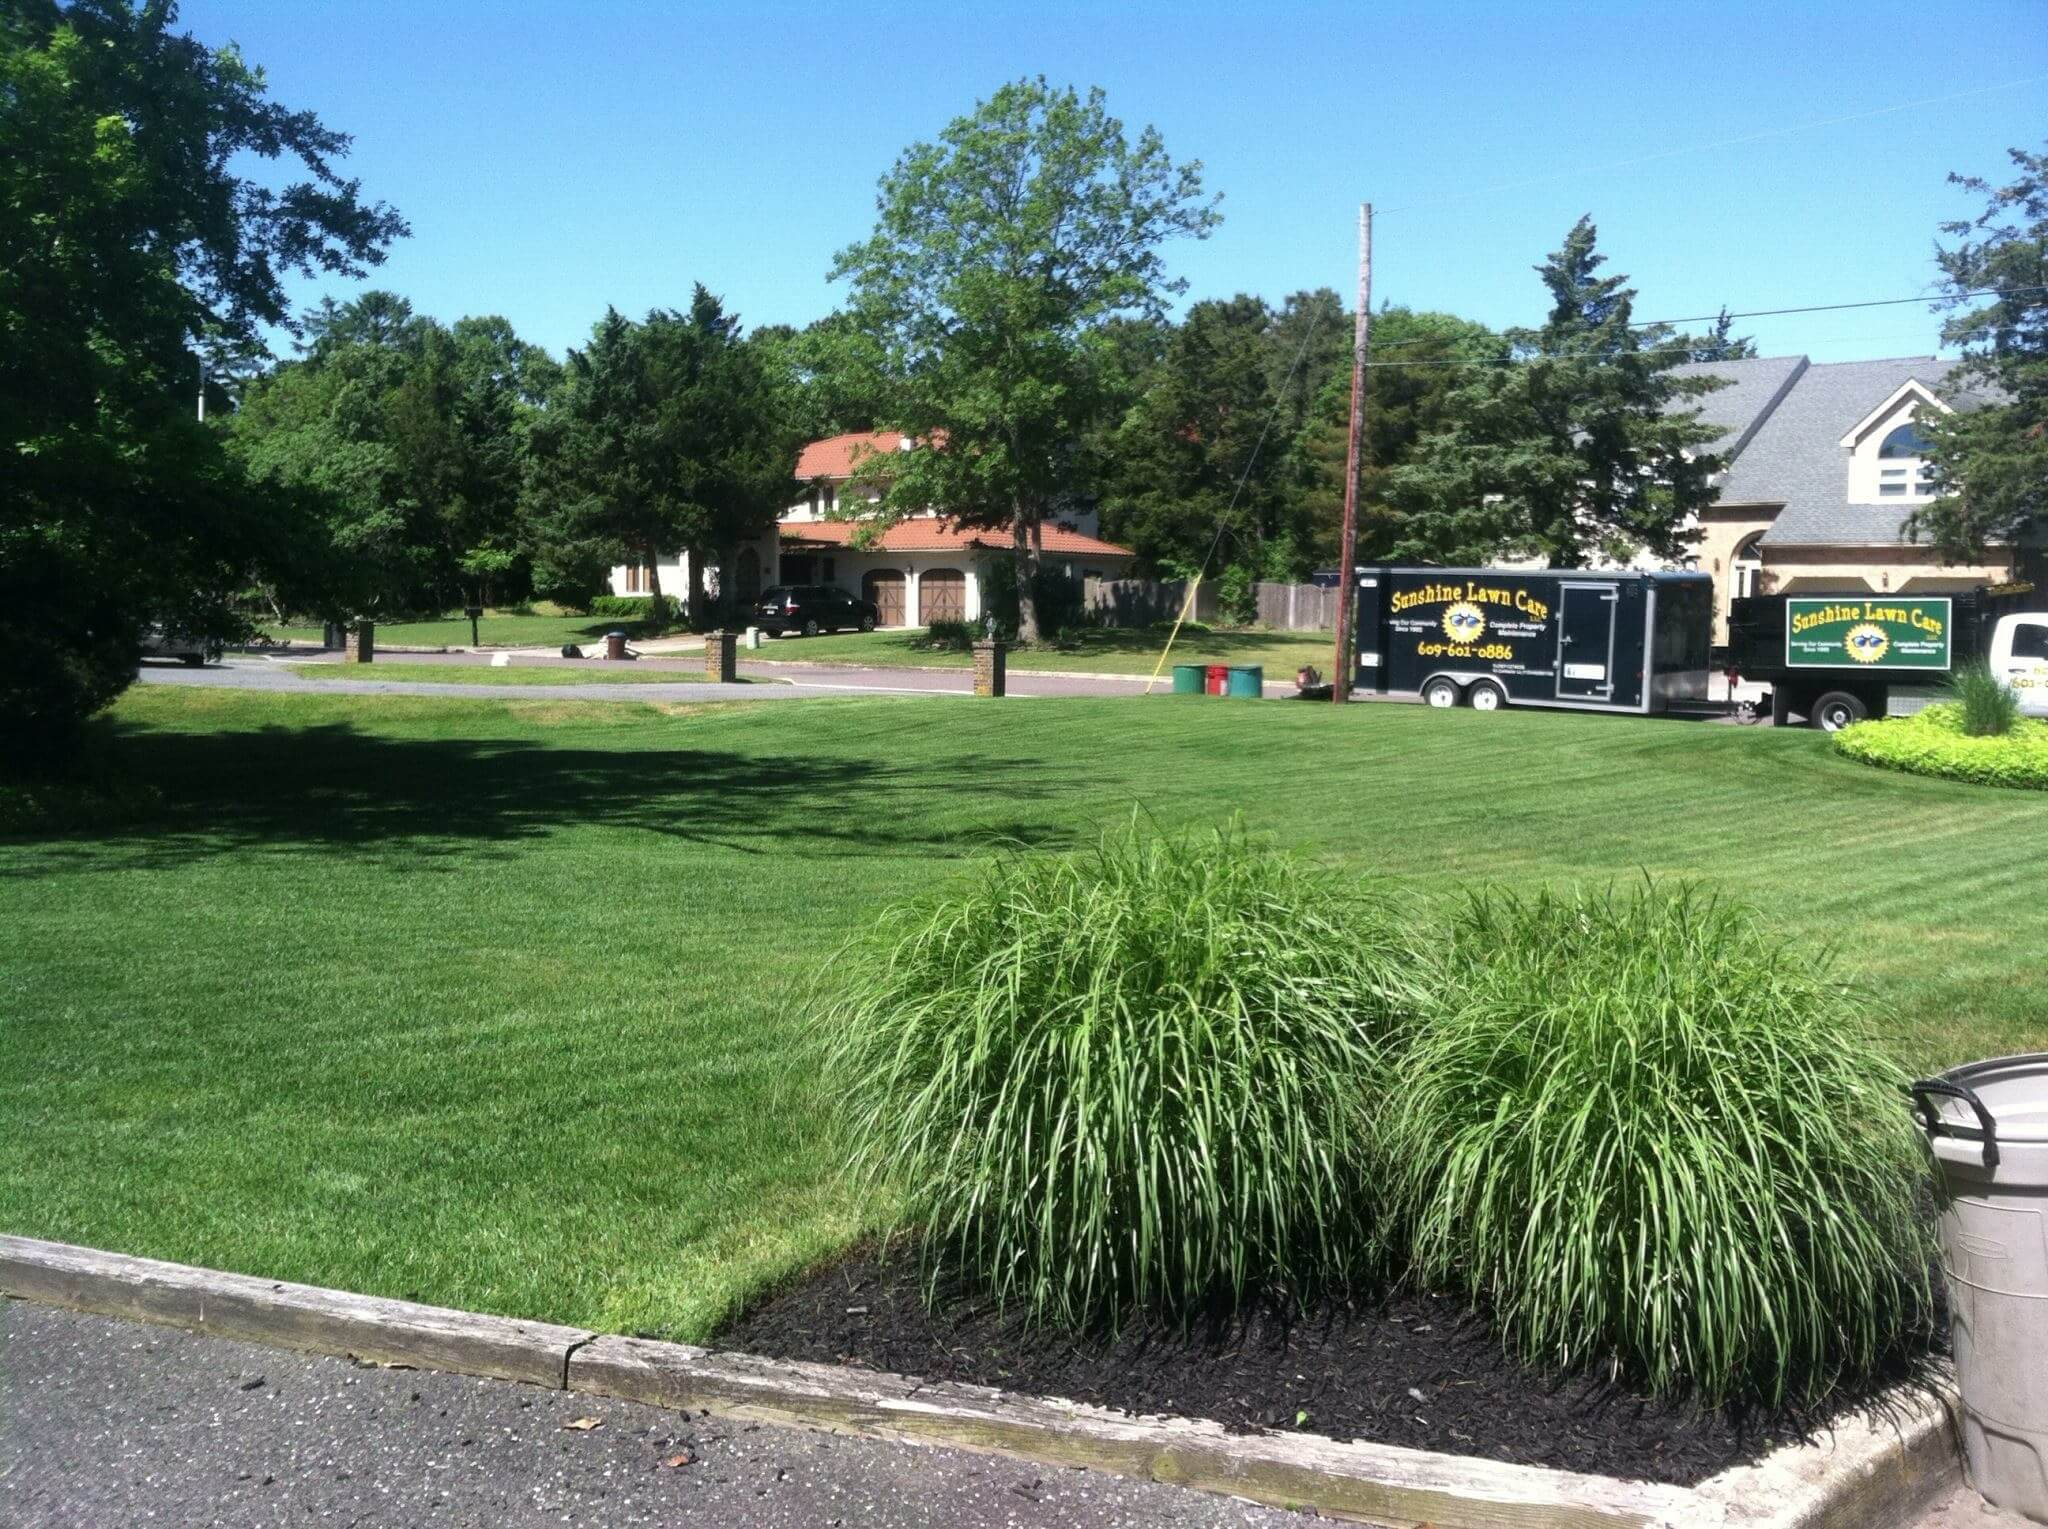 Sunshine Lawn Care at Days Inn